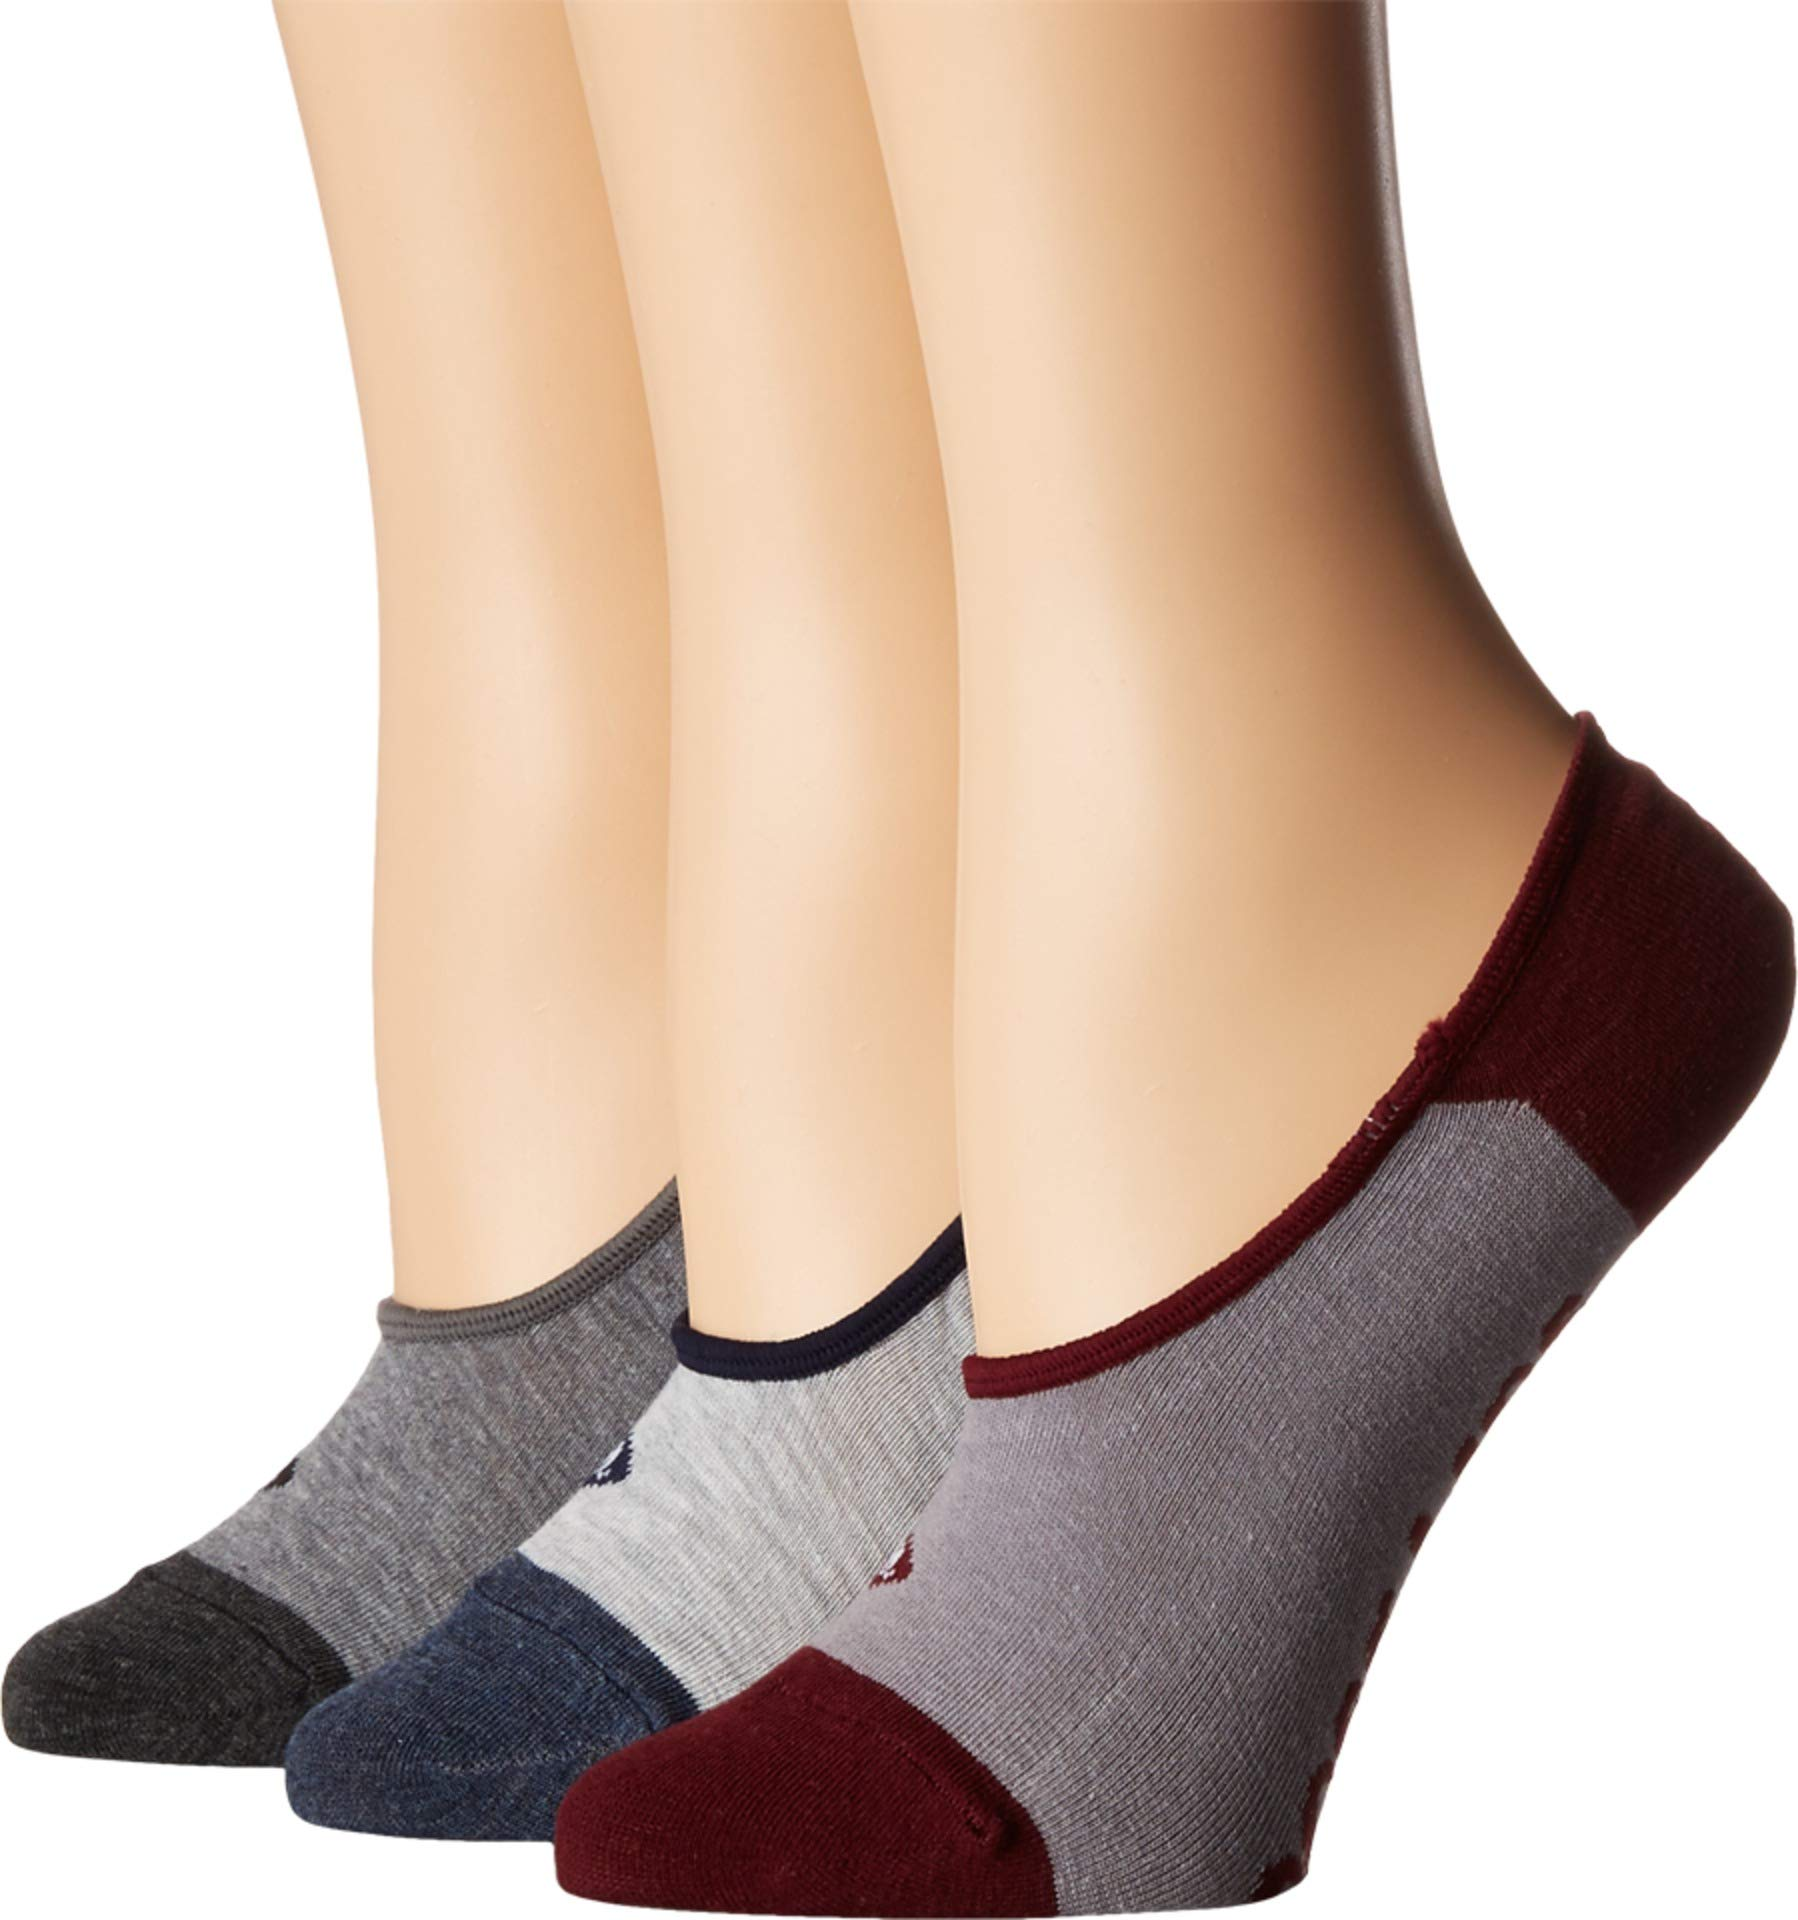 Sperry Top-Sider Women's 3 Pack Canoe No Show Liner Socks, Gray Heather Assorted, Shoe 4-10/Sock Size 9-11